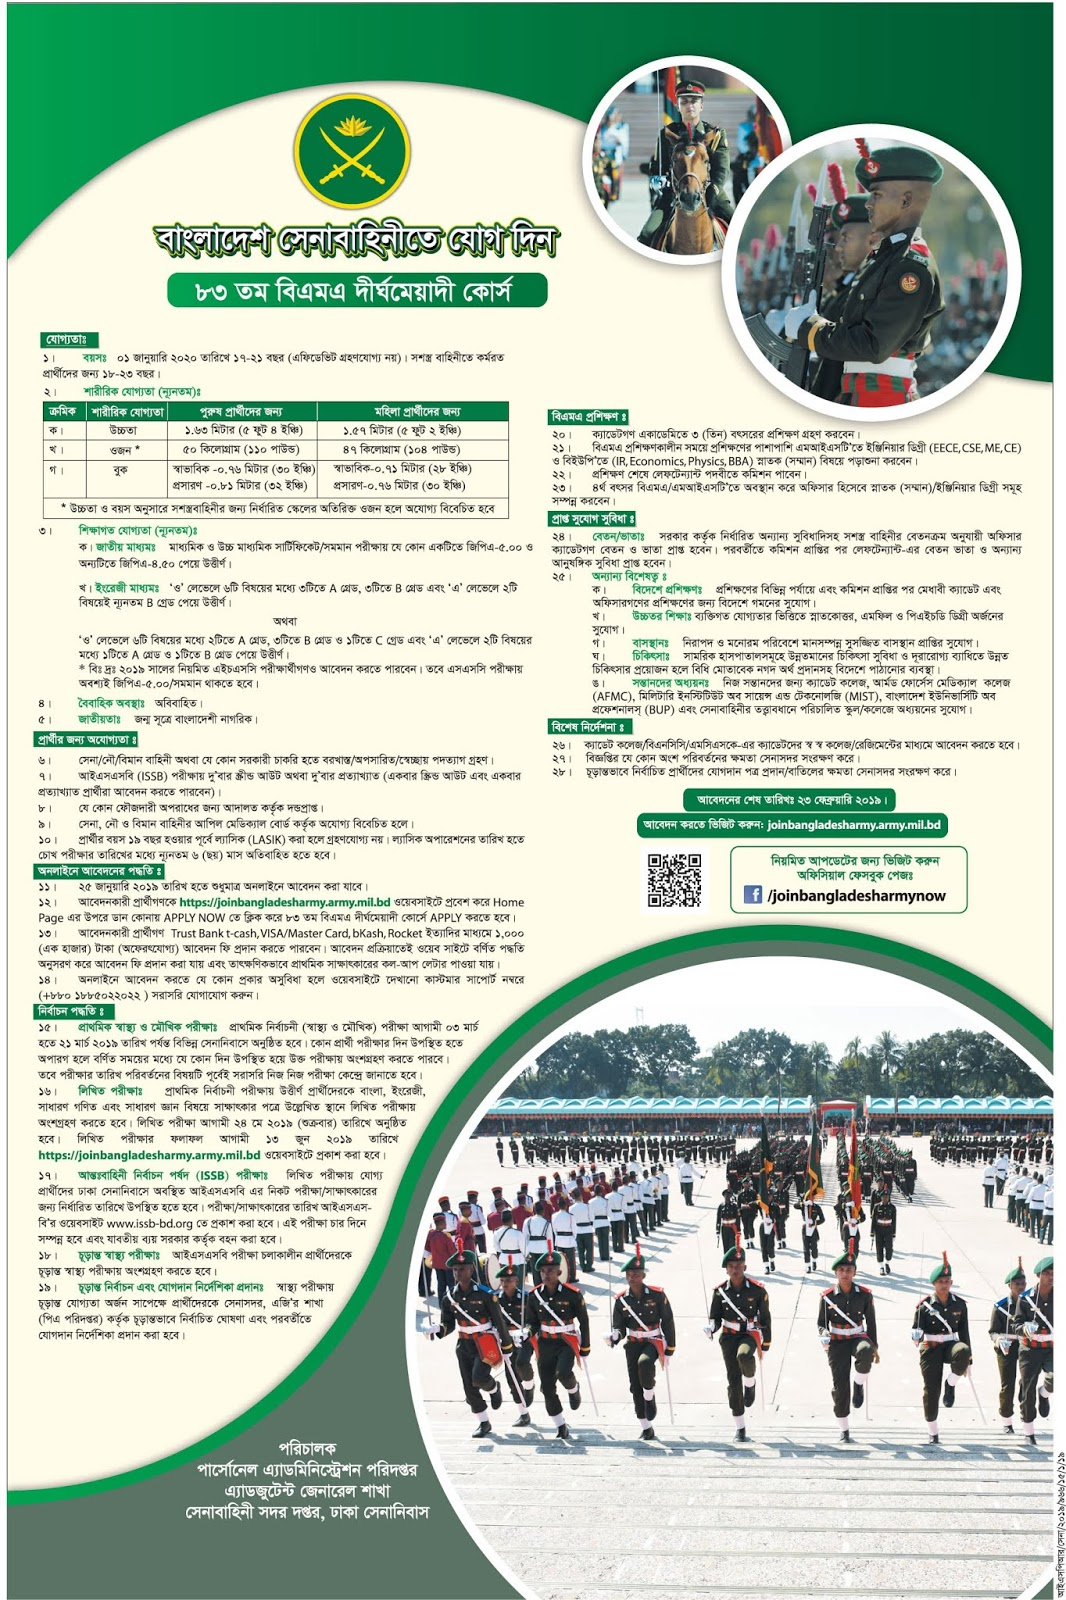 BMA-83th Long Course Cadet Recruitment Circular 2018